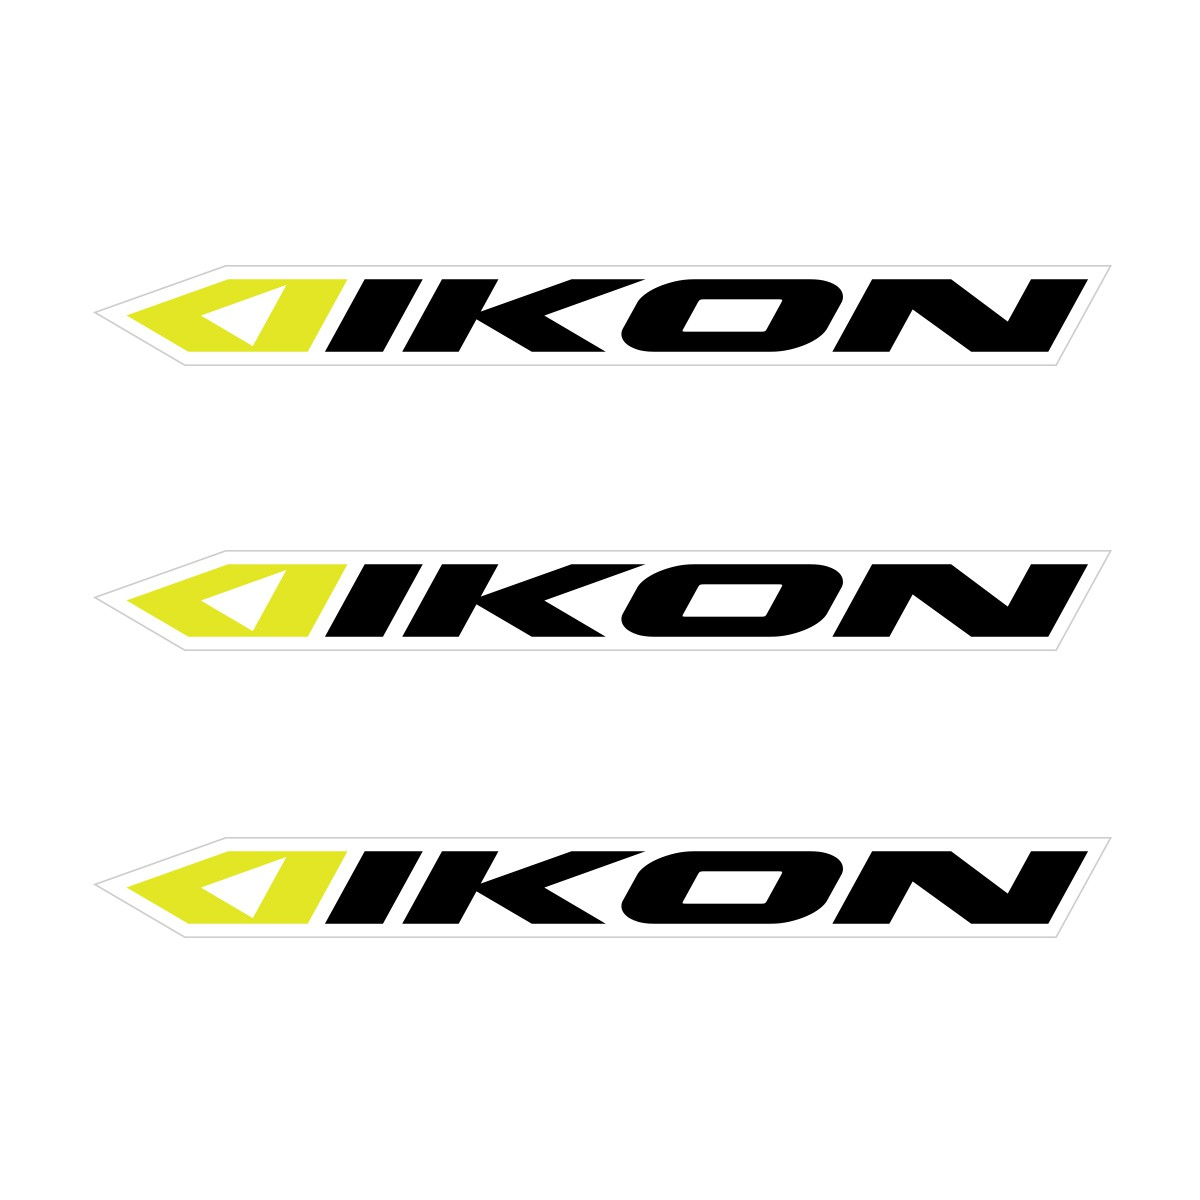 IKON SMALL STICKER 114x11MM PACK X 3 BLACK/NEON YELLOW